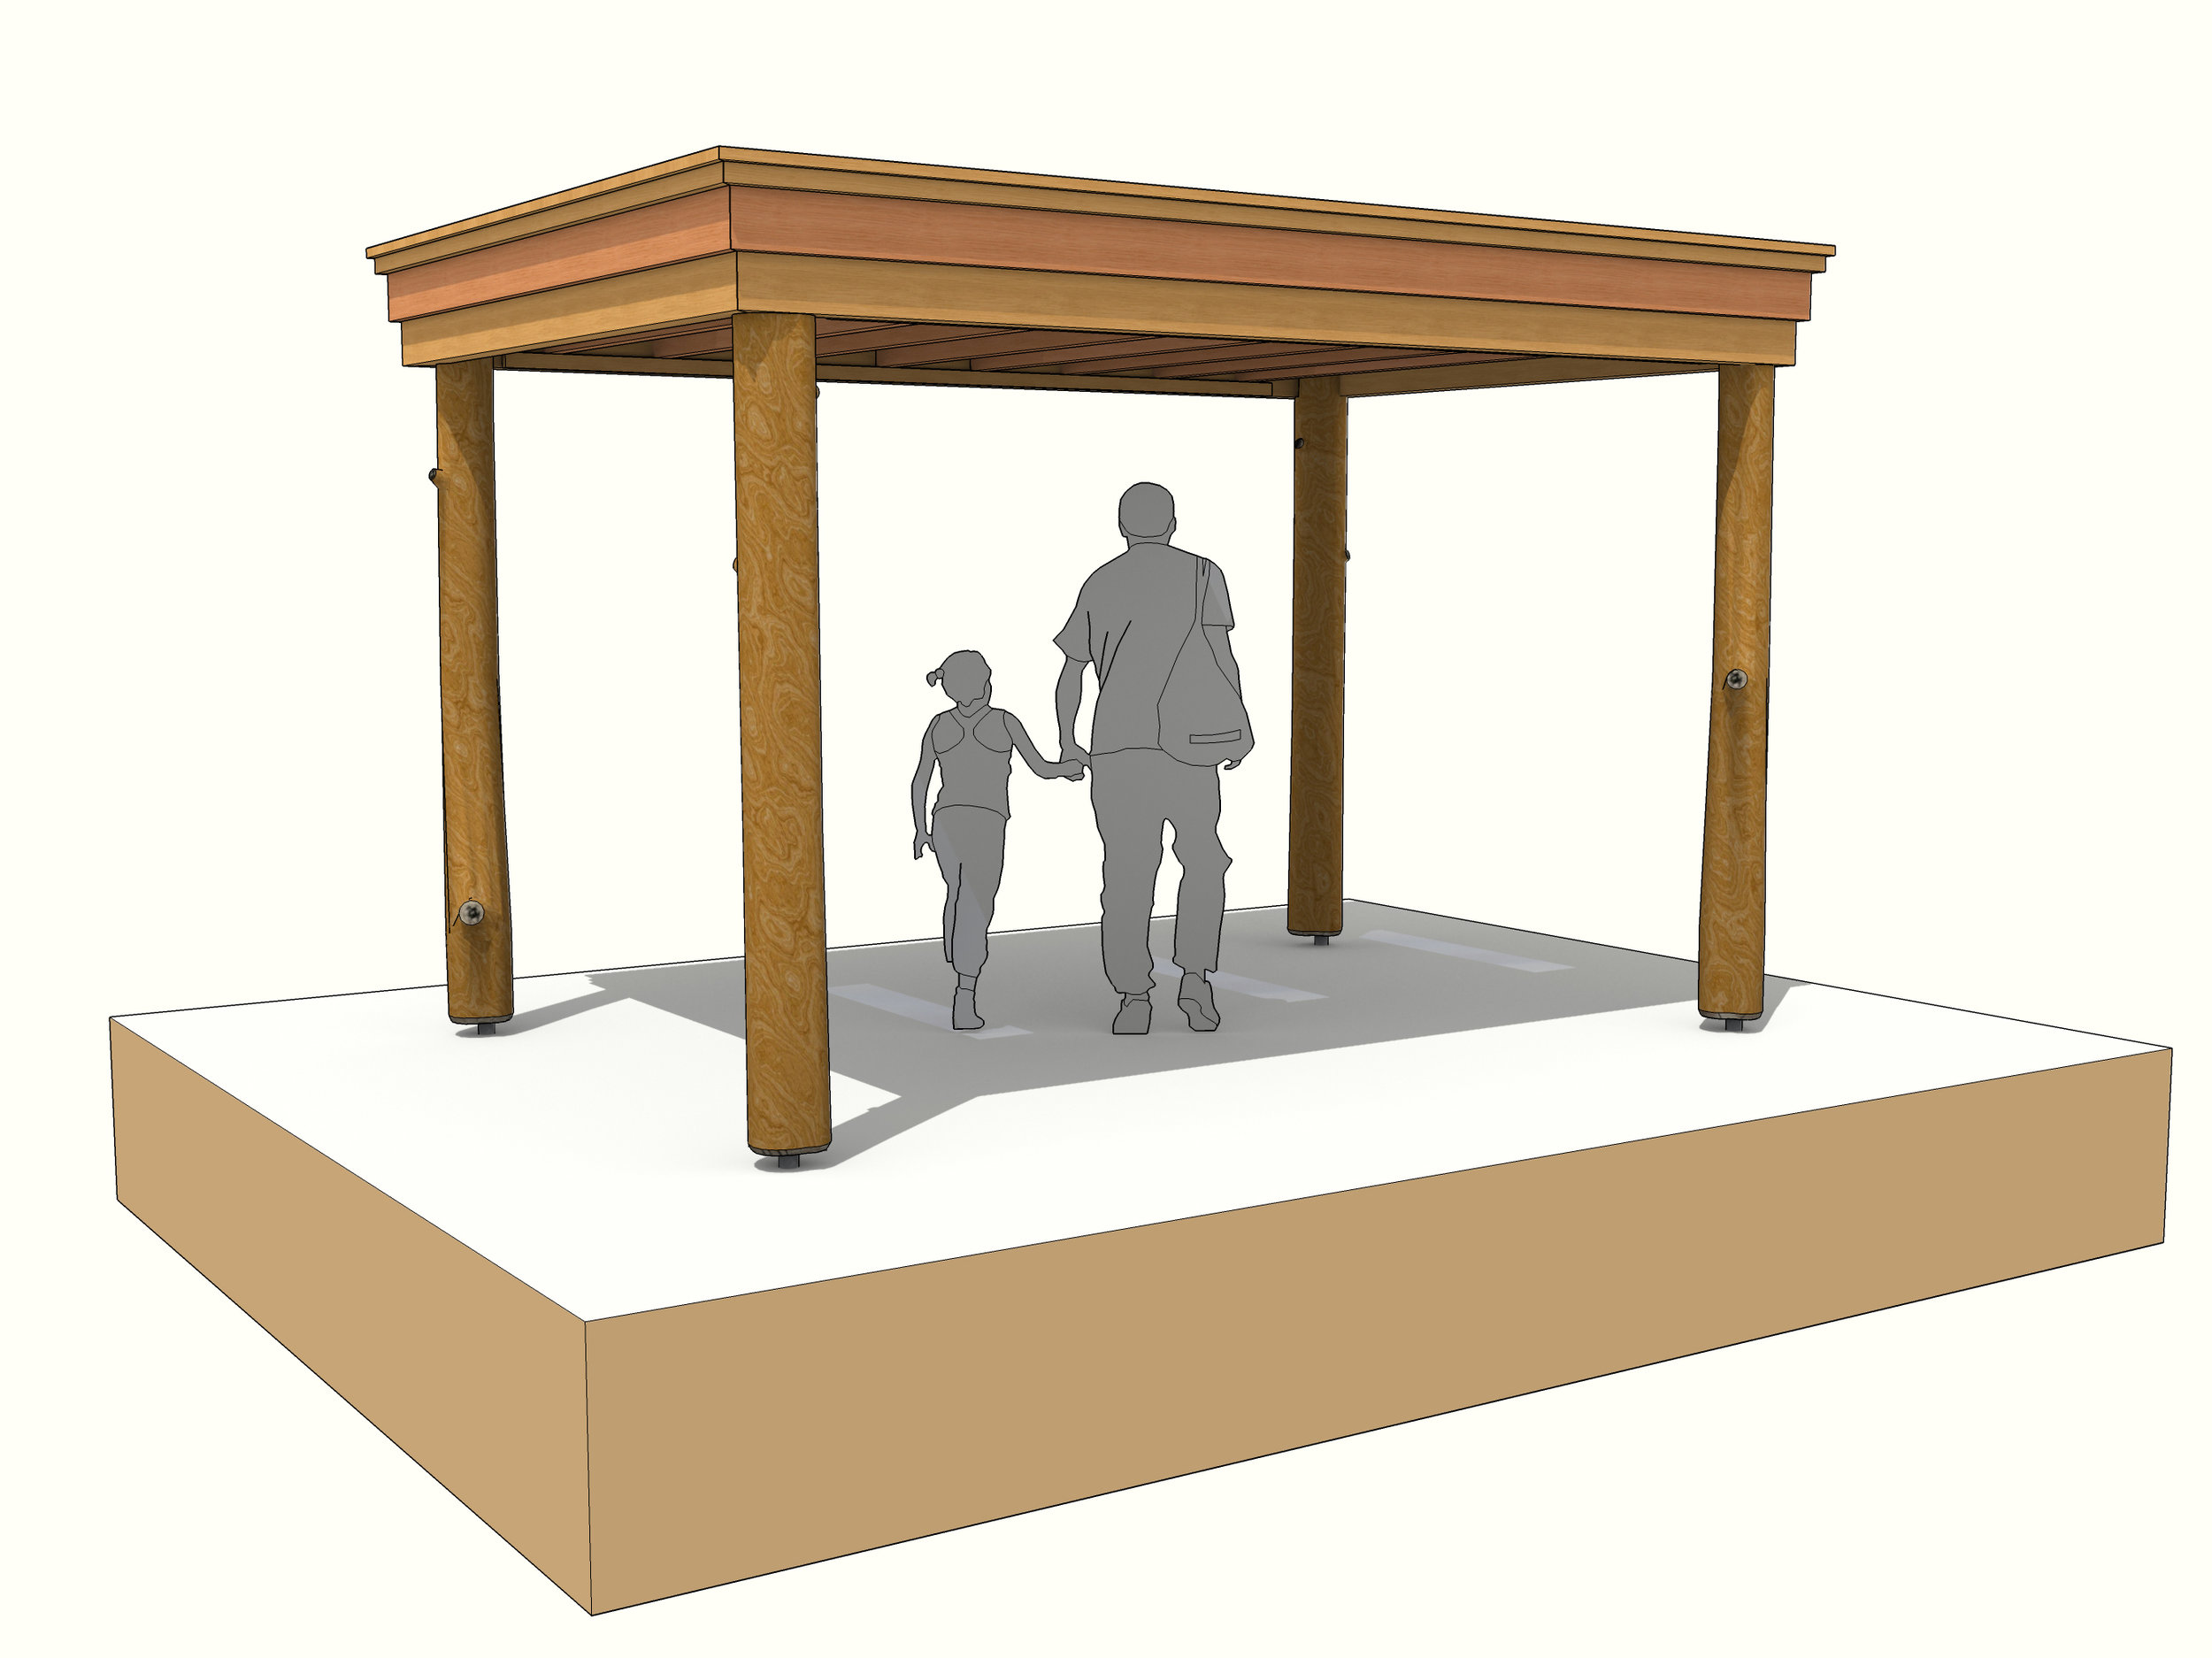 Rectangular timber frame round pole gazeebo garden shelter.jpg